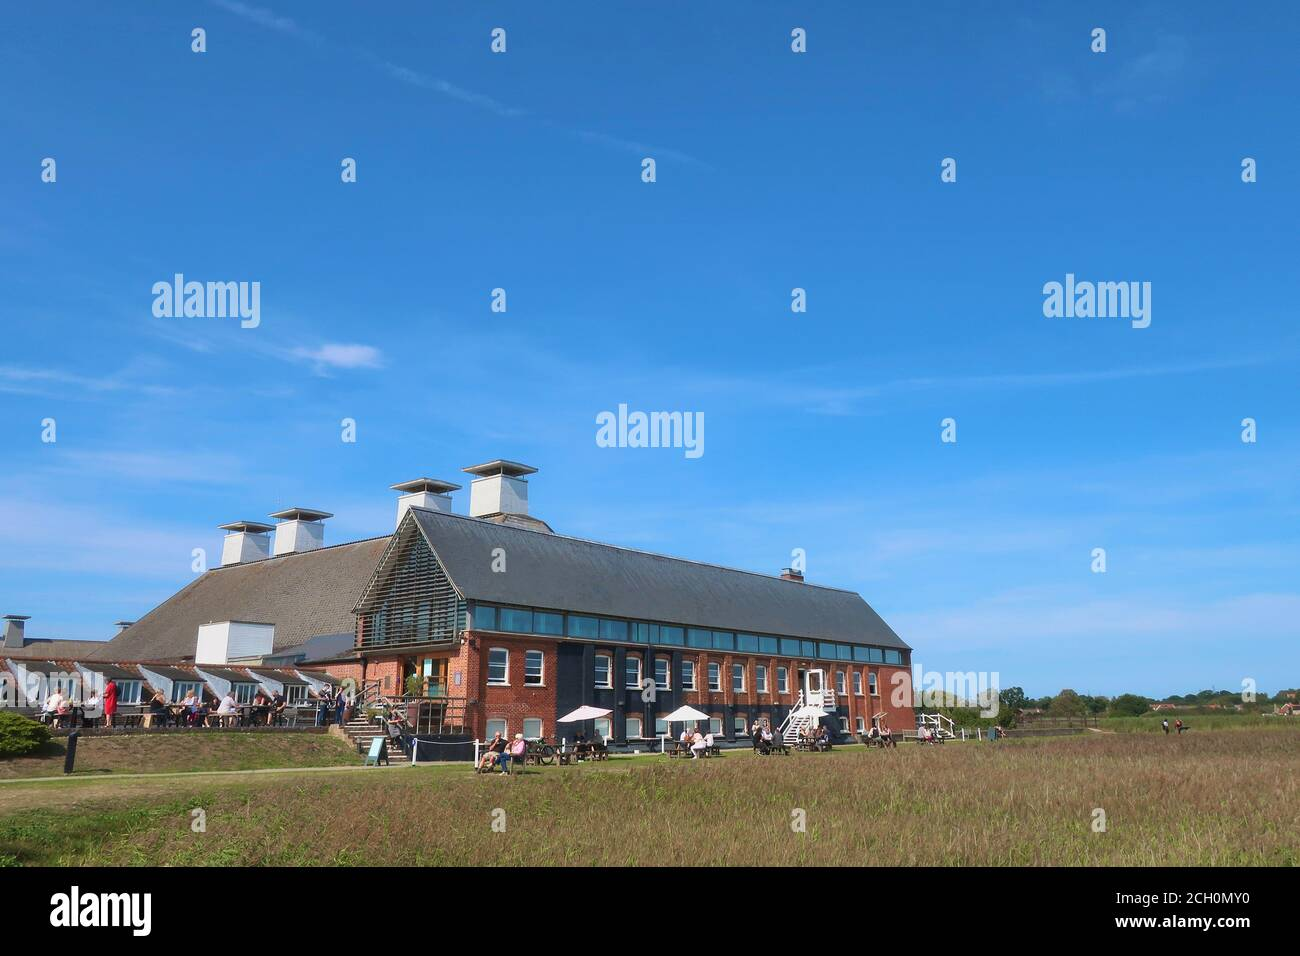 Snape, Suffolk, UK - 13 September 2020: Sunny Sunday autumn afternoon by the River Alde at Snape Maltings. Stock Photo